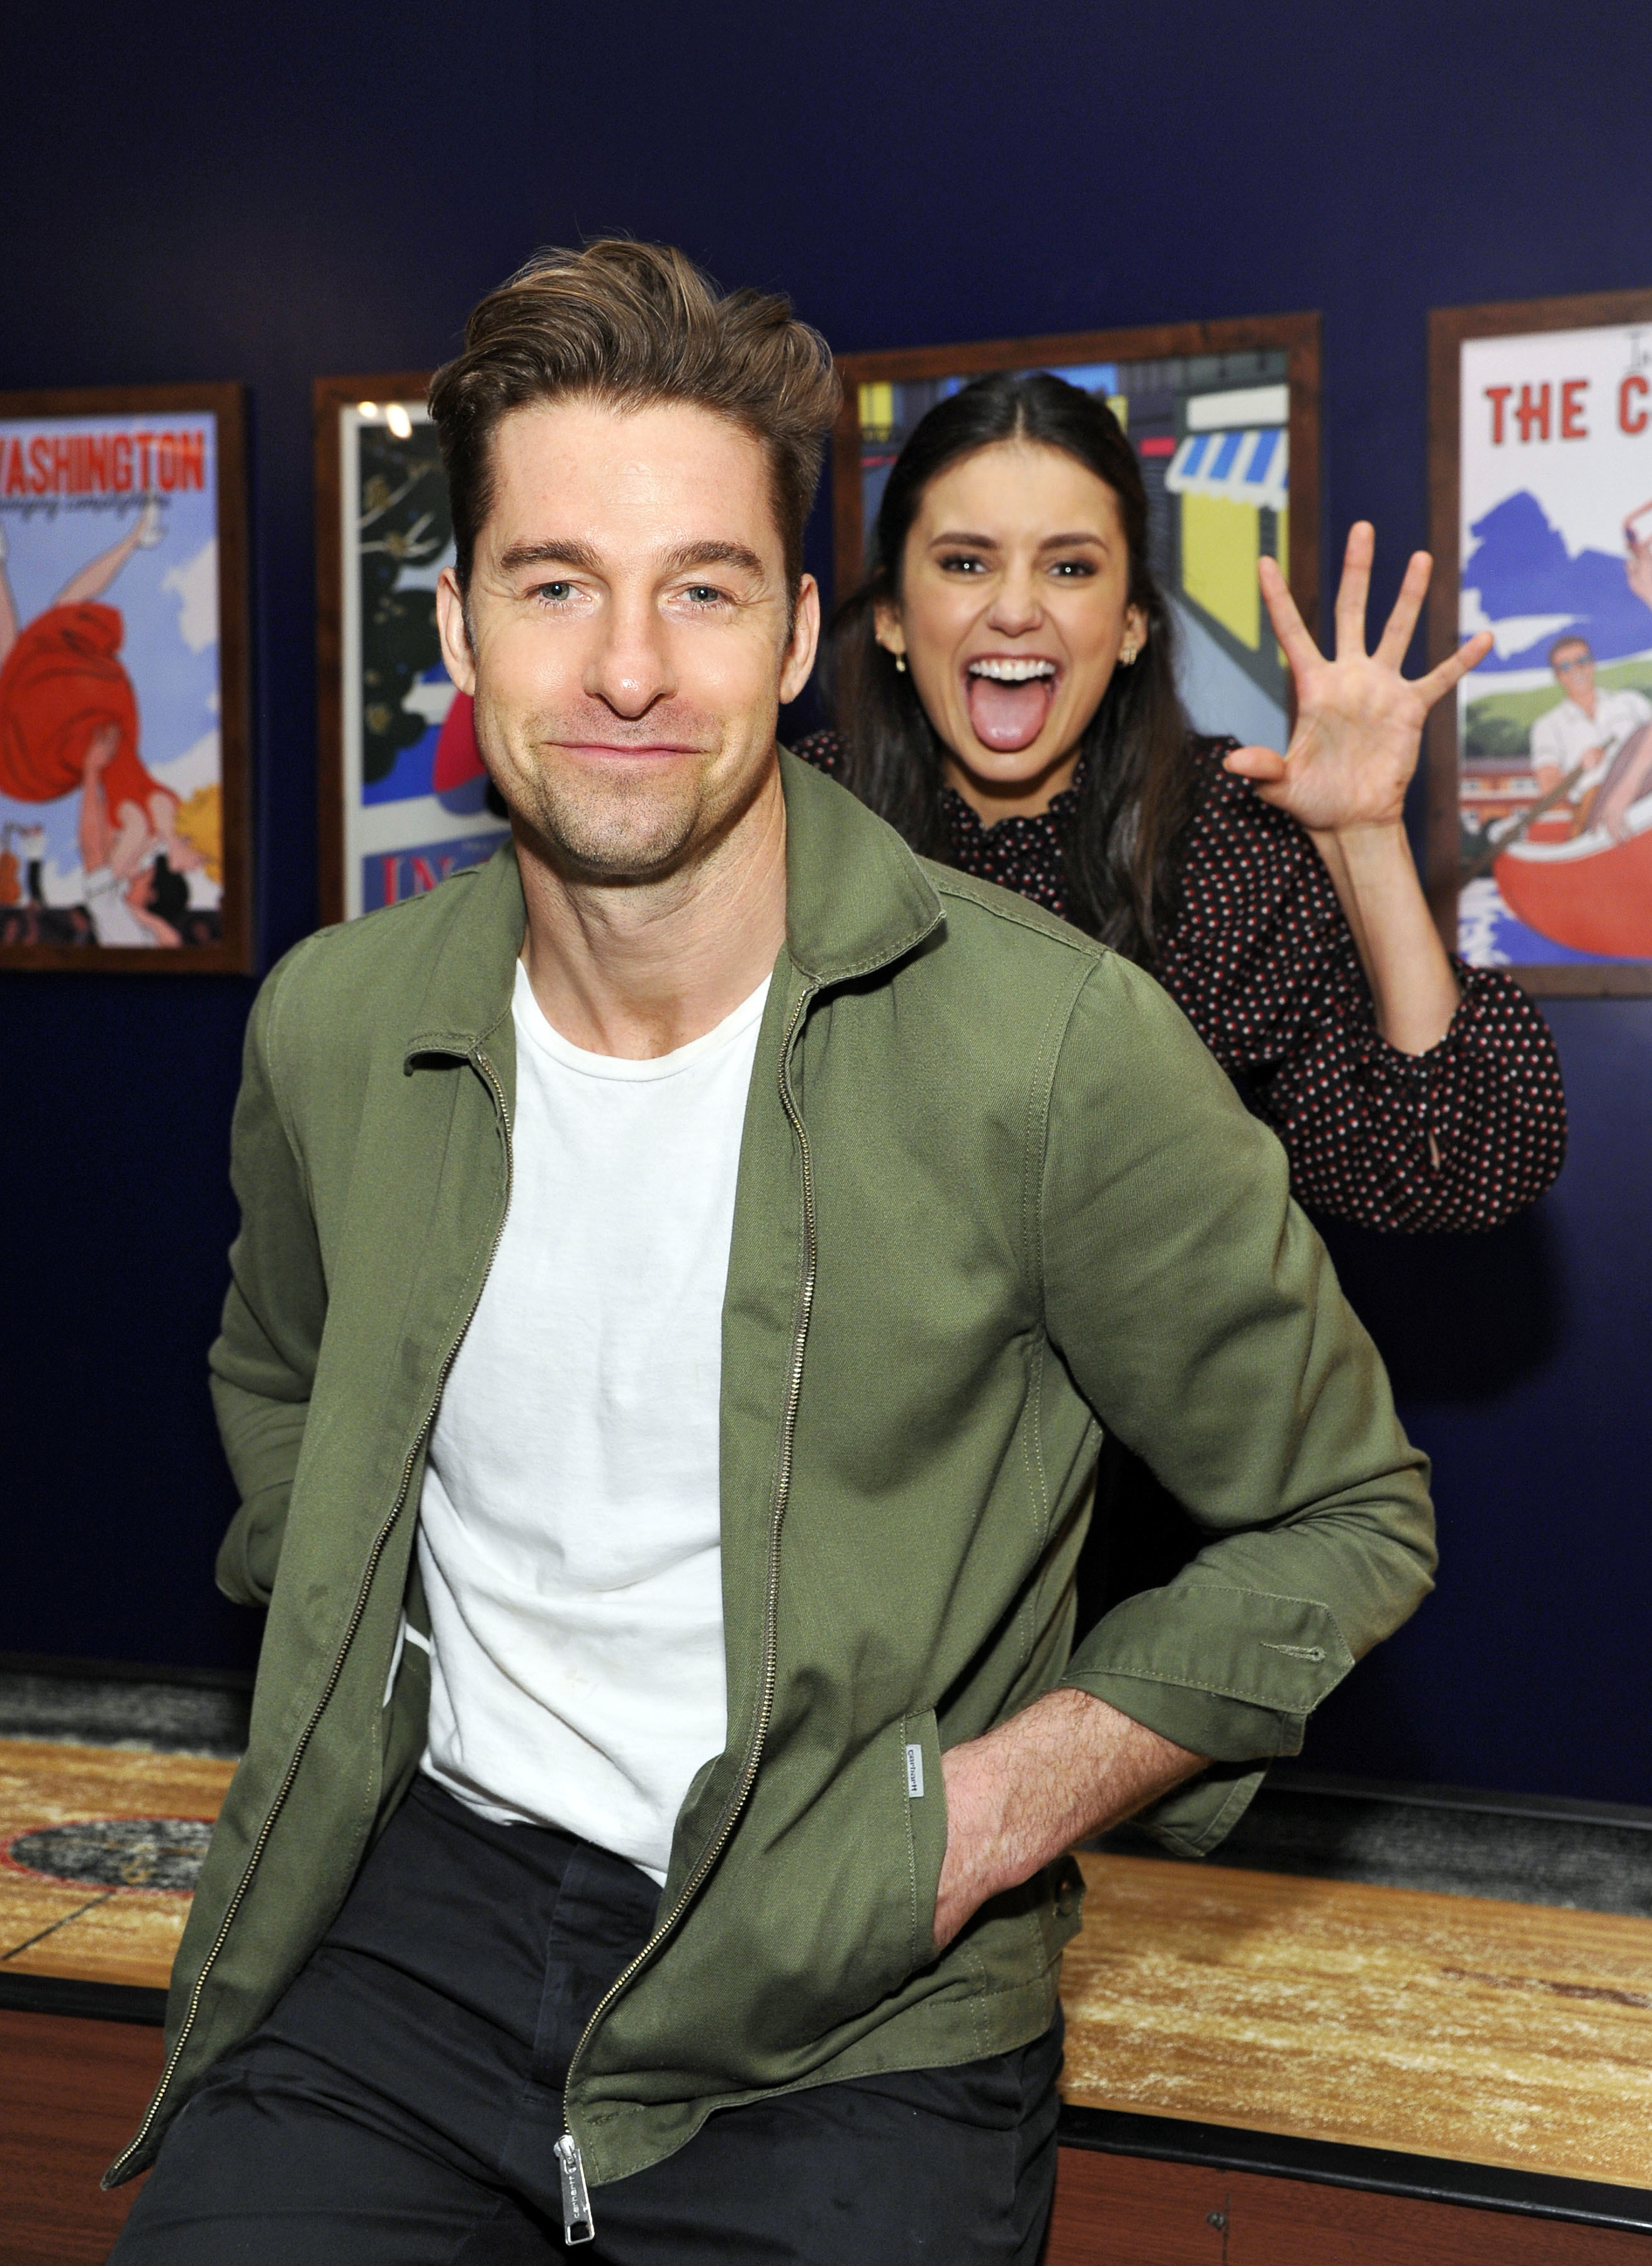 Nina Dobrev and Scott Speedman attend the Prime Video Blue Room during the SXSW Festival in Austin, Texas, on March 10, 2019.